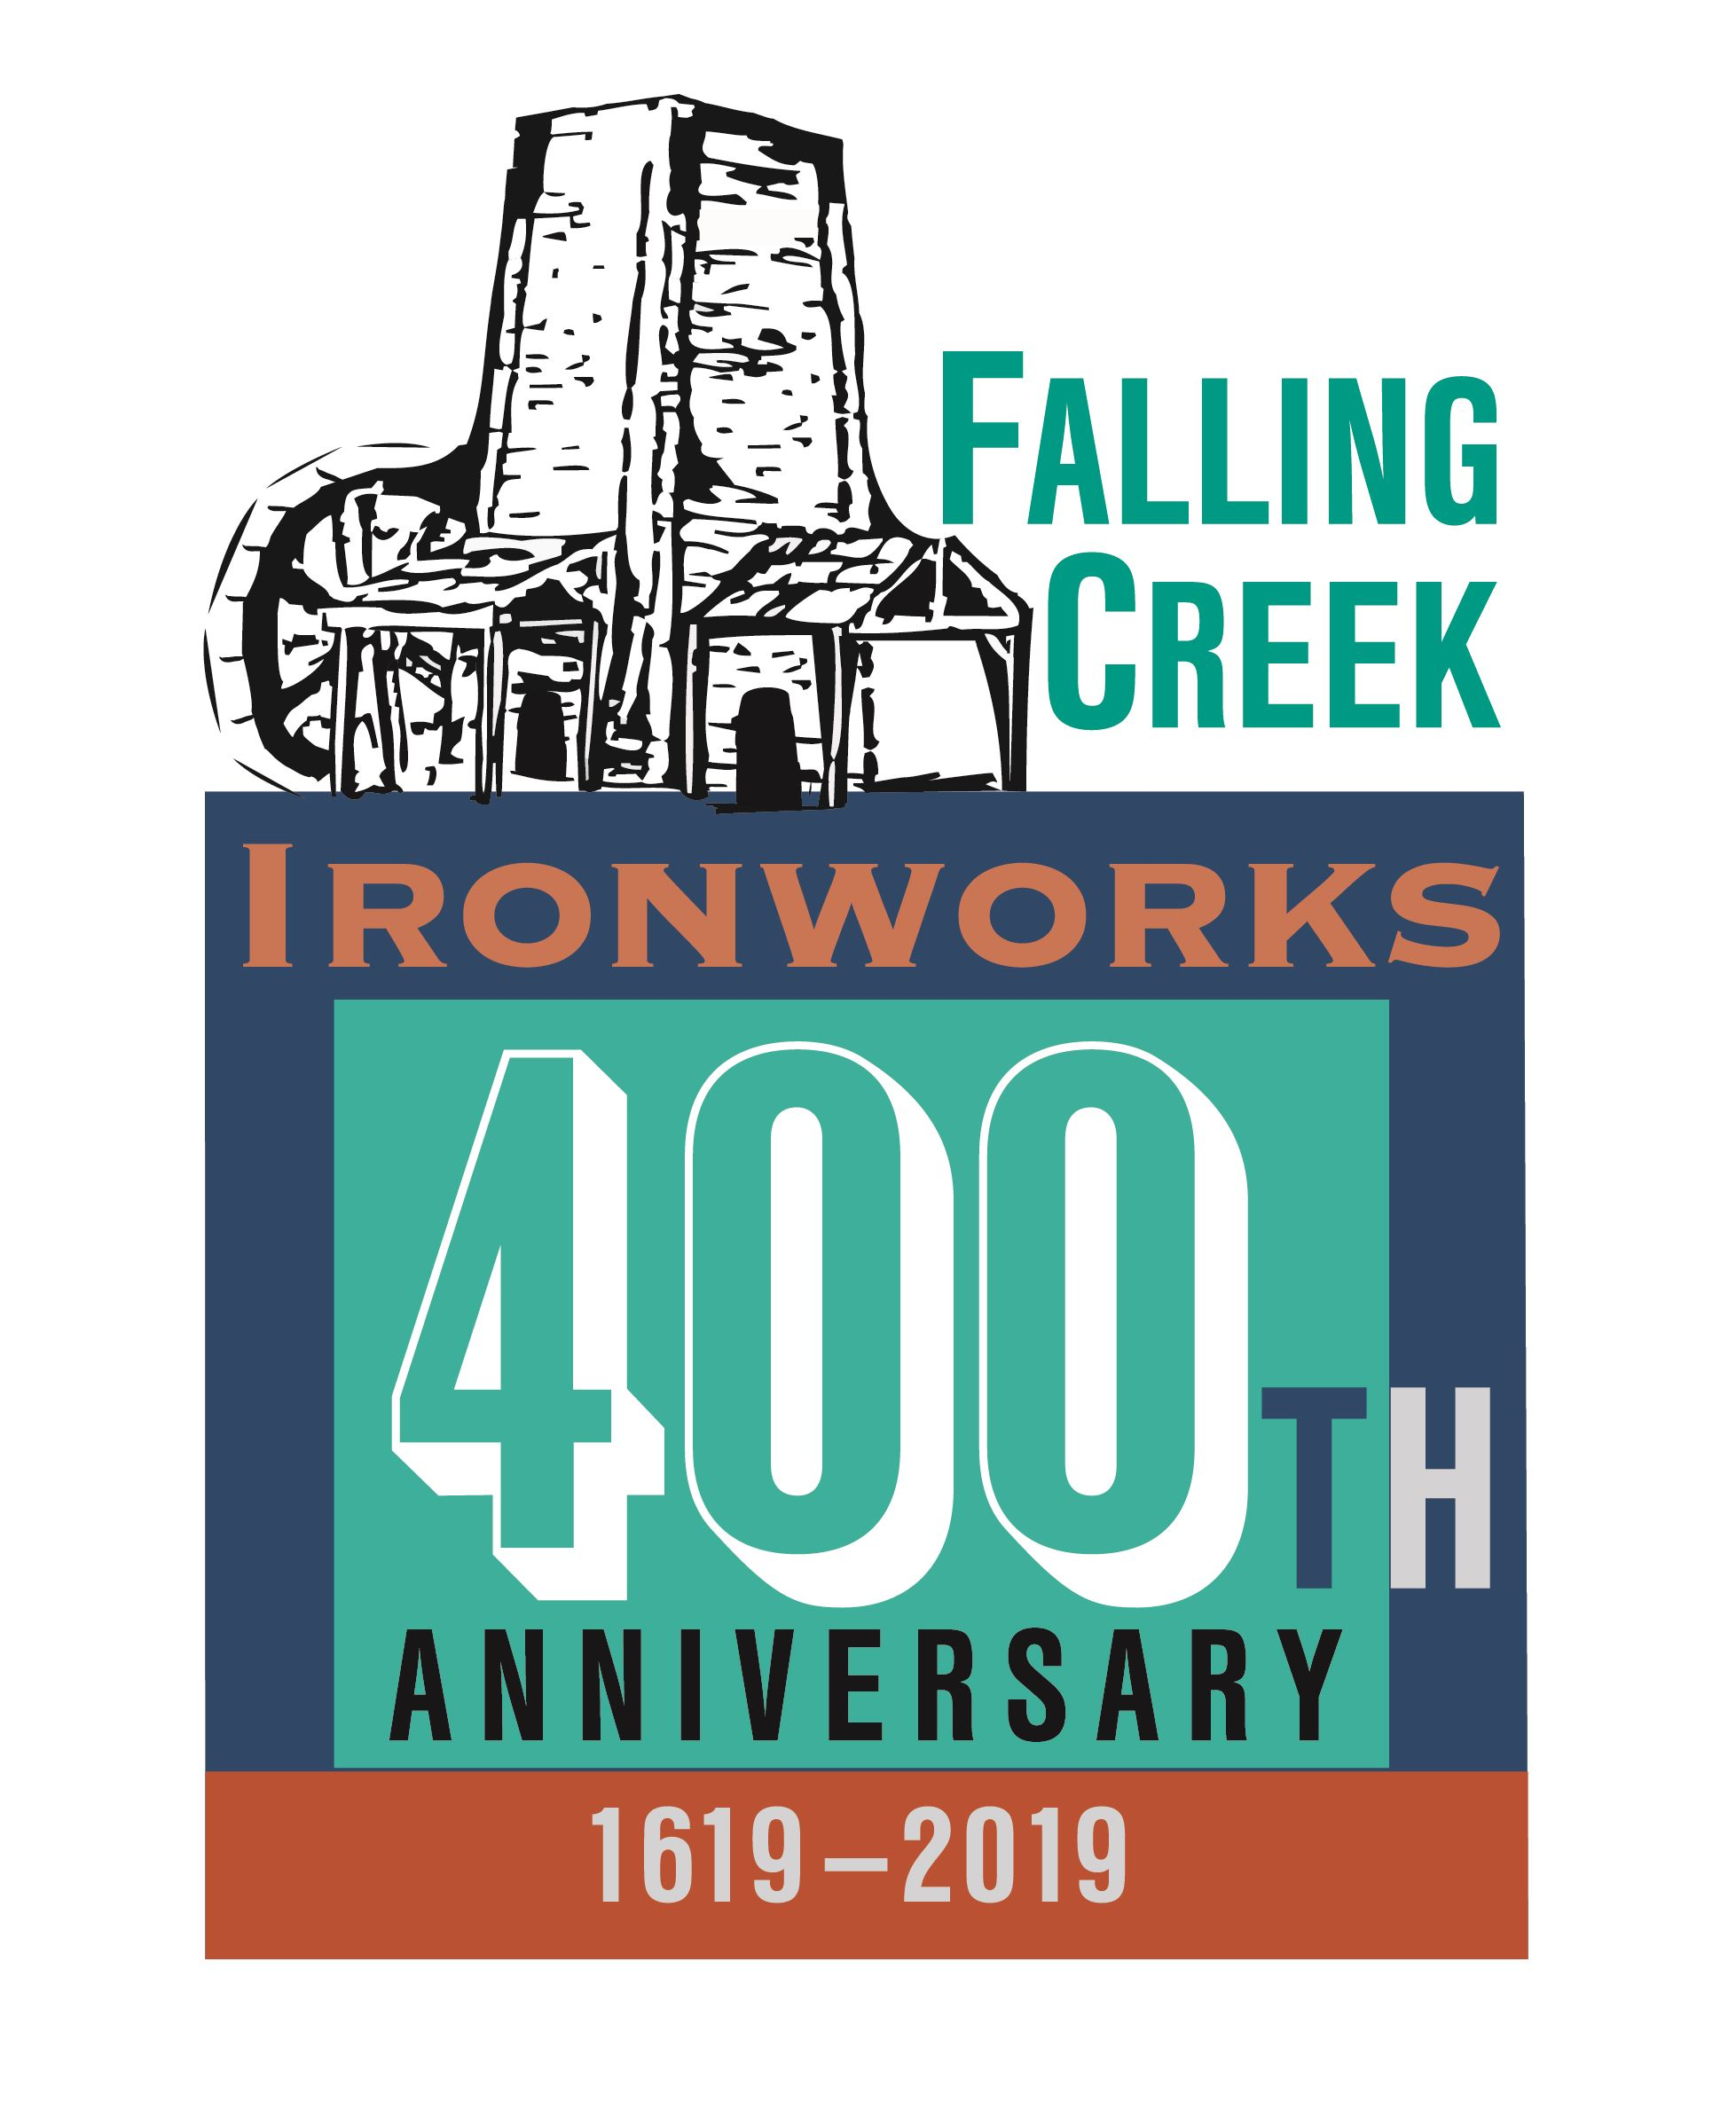 Line drawing of first iron furnace as part of logo for Falling Creek Ironworks 400th Anniversary